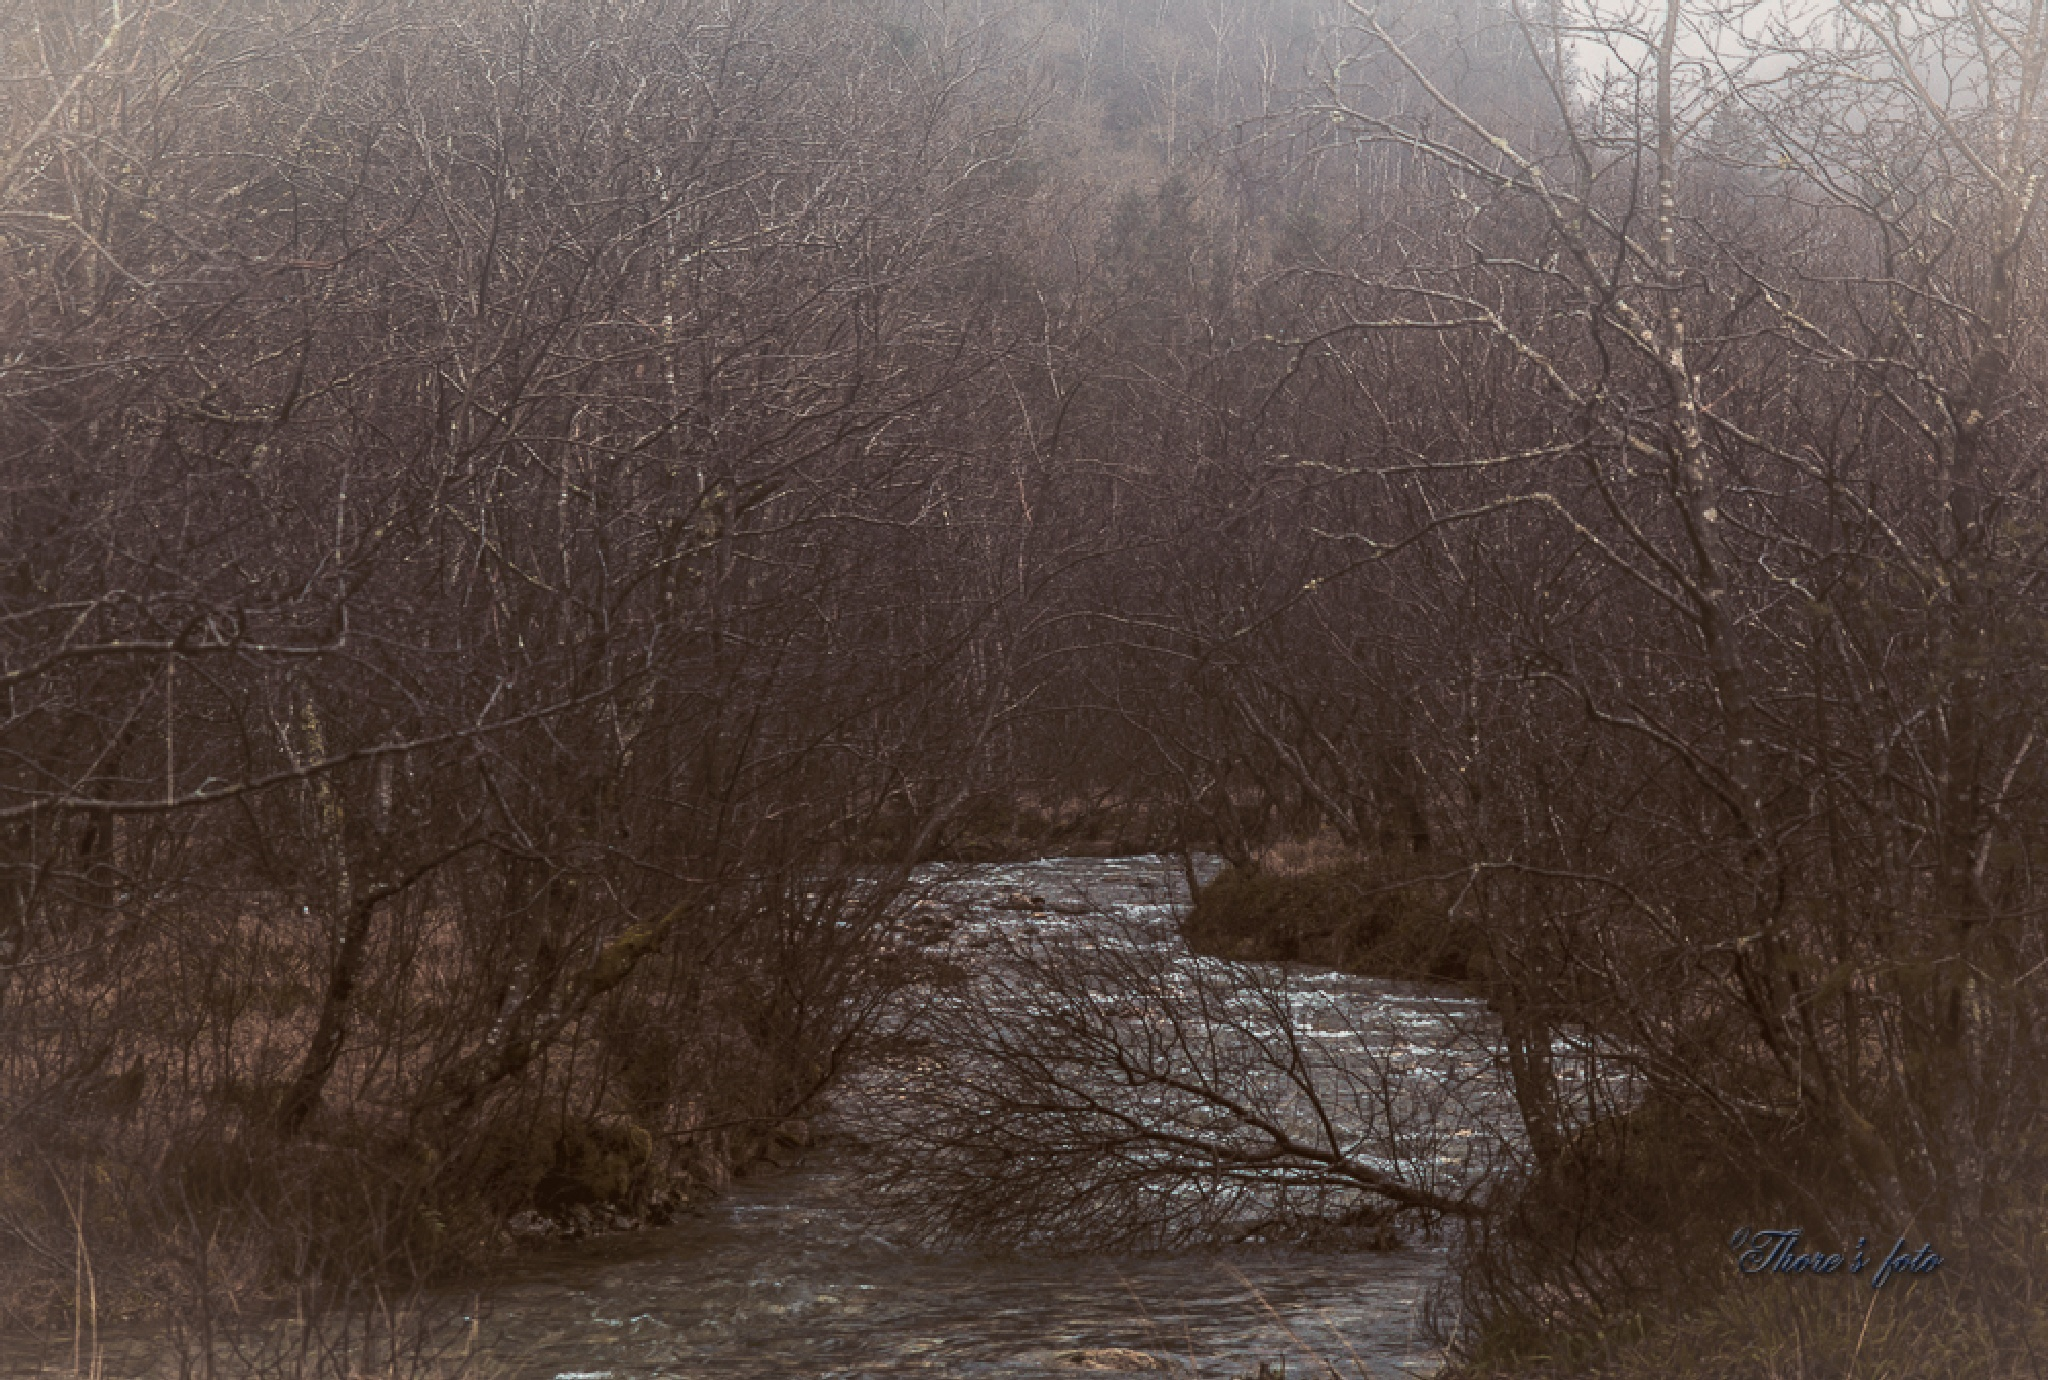 The creek by Thore's photo